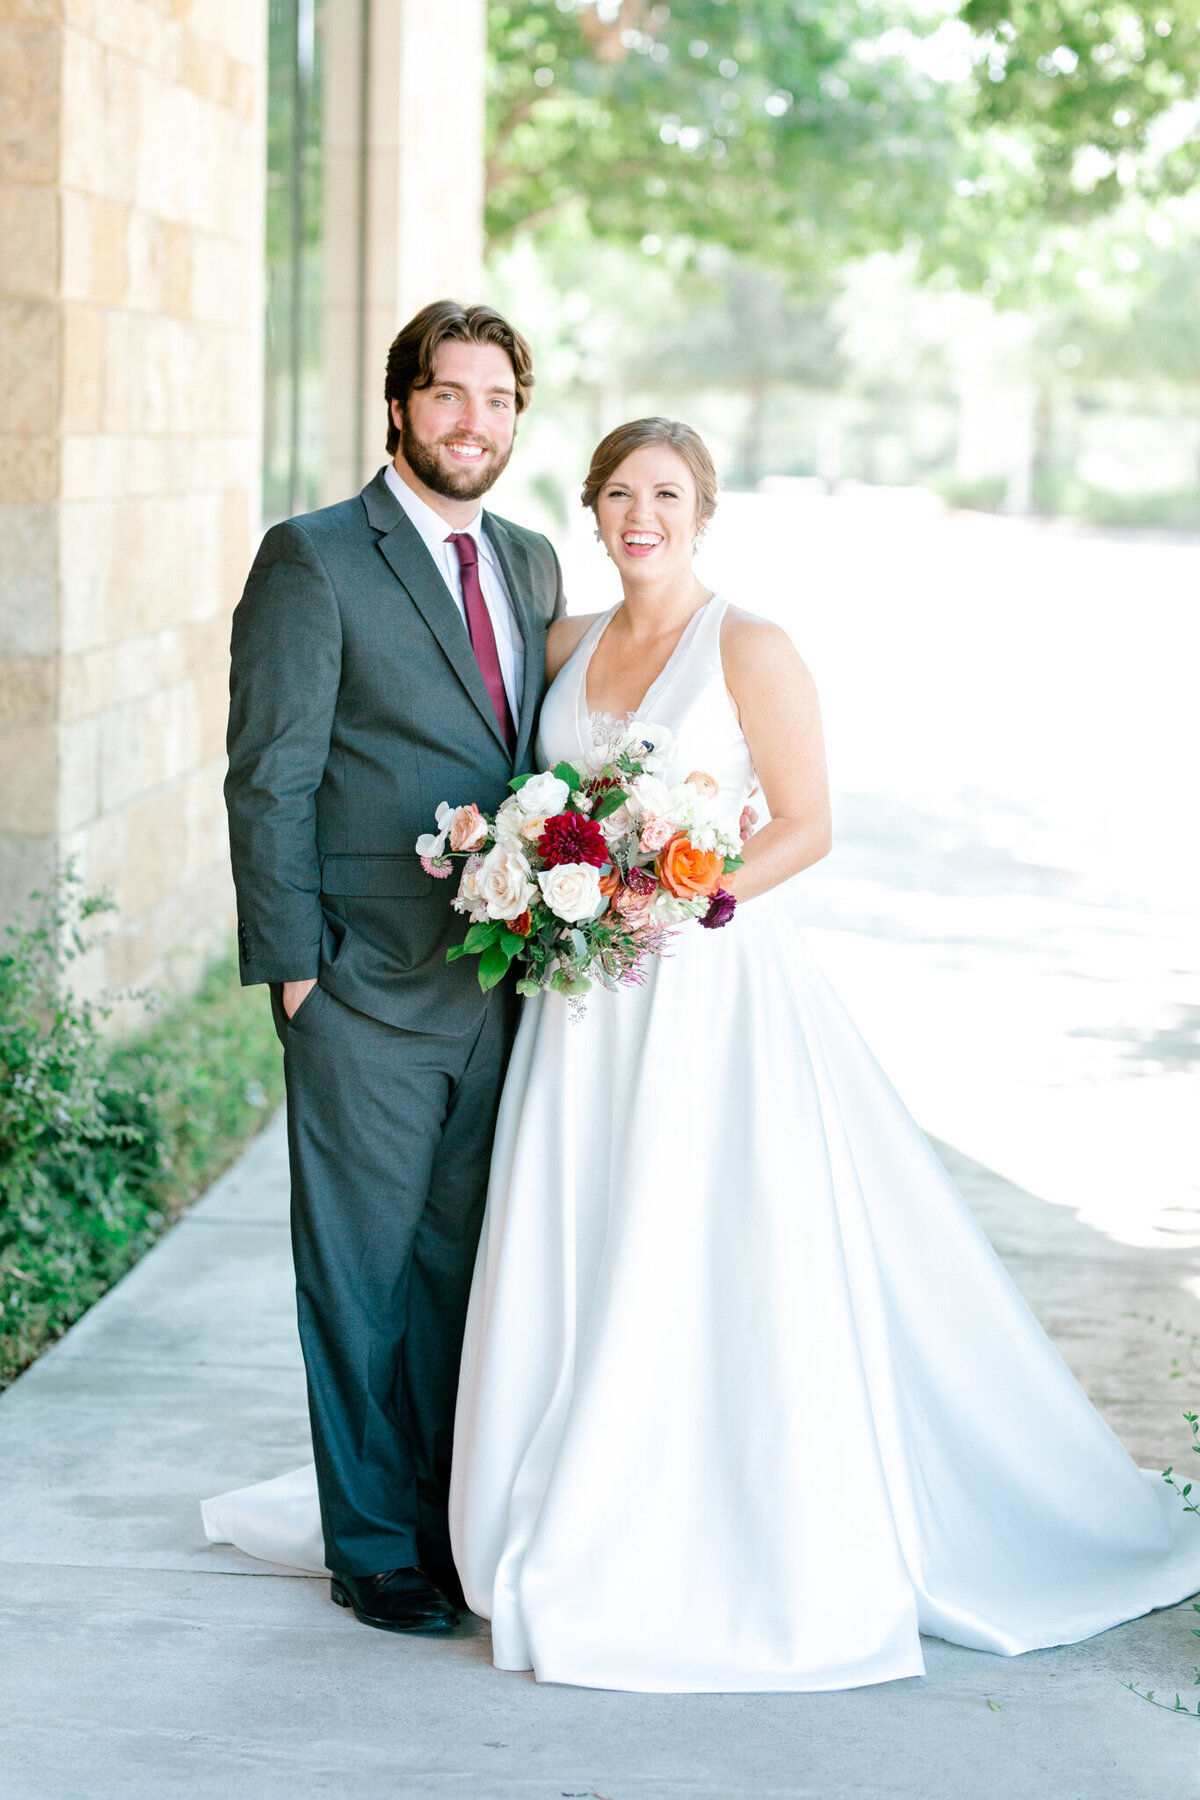 Kaylee & Michael's Wedding at Watermark Community Church | Dallas Wedding Photographer | Sami Kathryn Photography-1